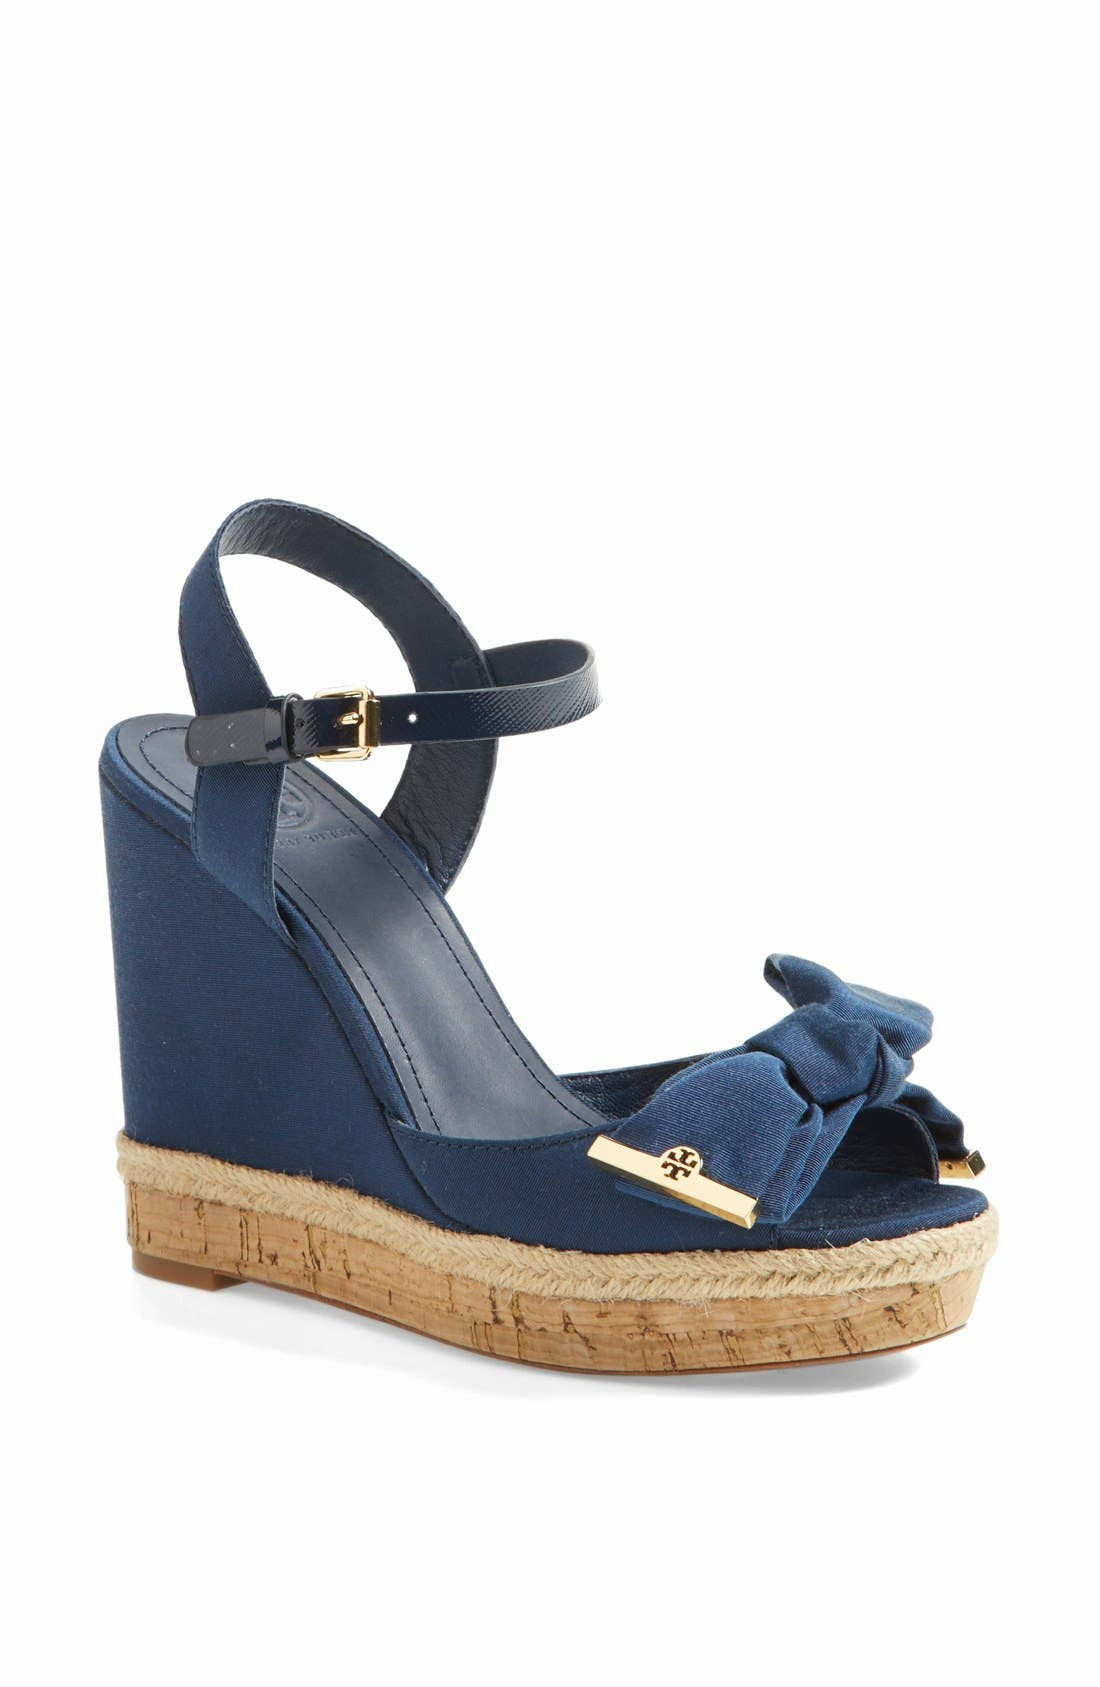 Alternate Image 1 Selected - Tory Burch 'Penny' Wedge Sandal